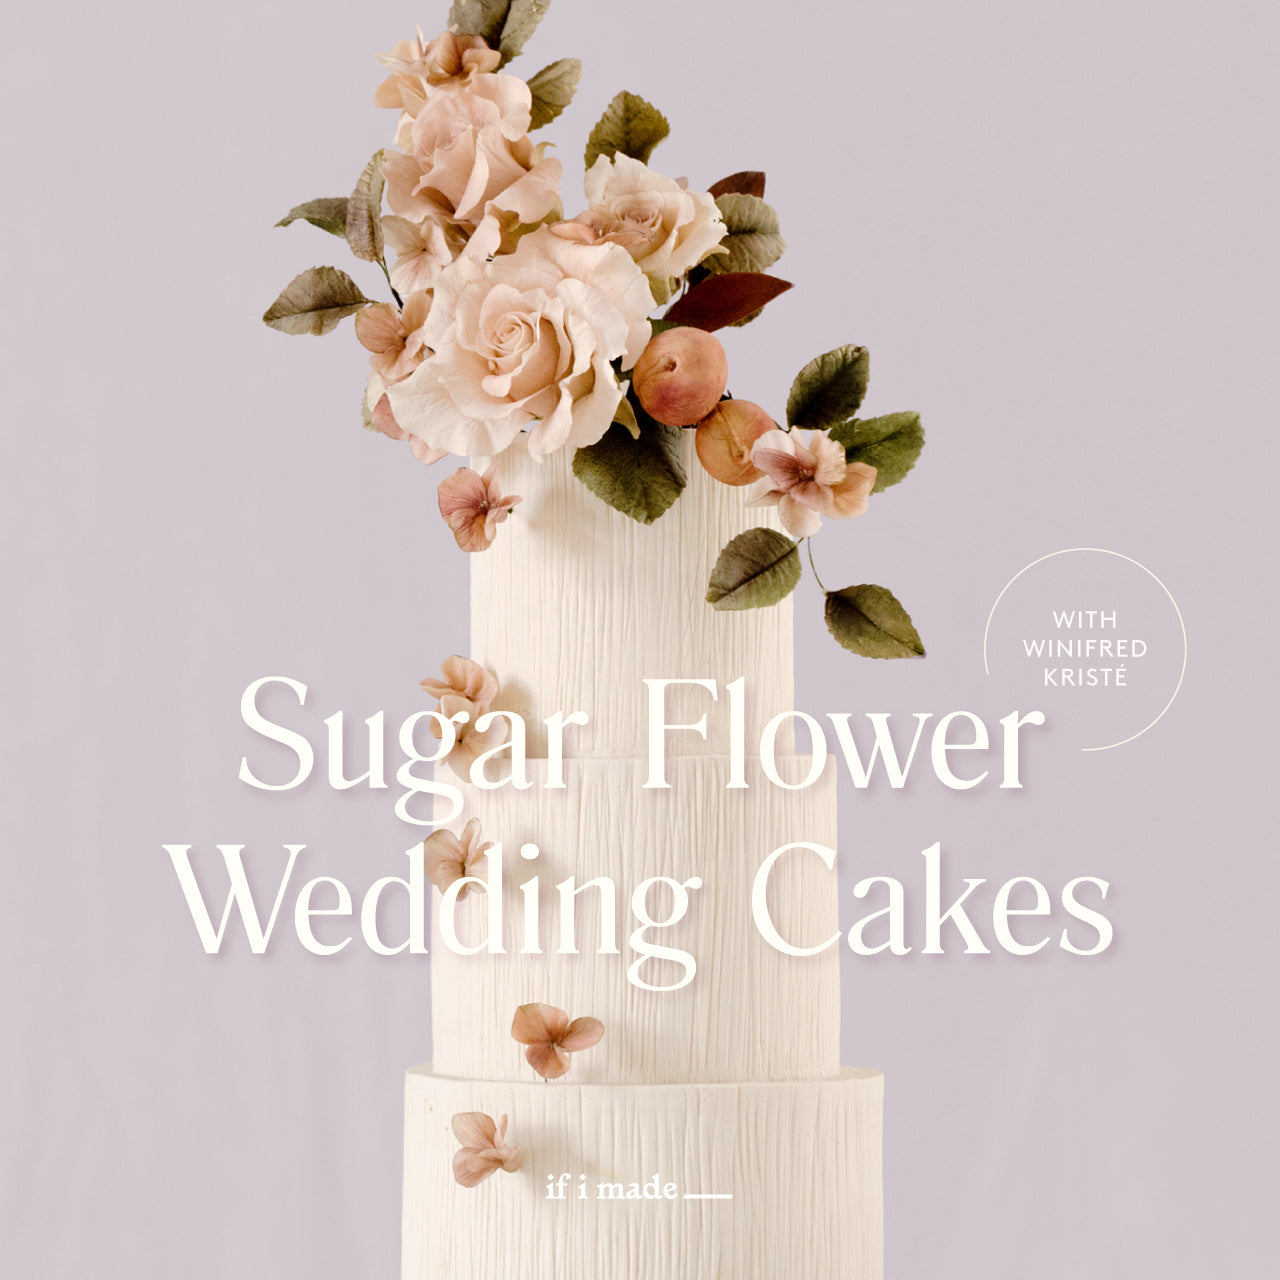 Extended Sale Payment Plan: Sugar Flower Wedding Cakes with Winifred Kriste - 19 Payments of $69